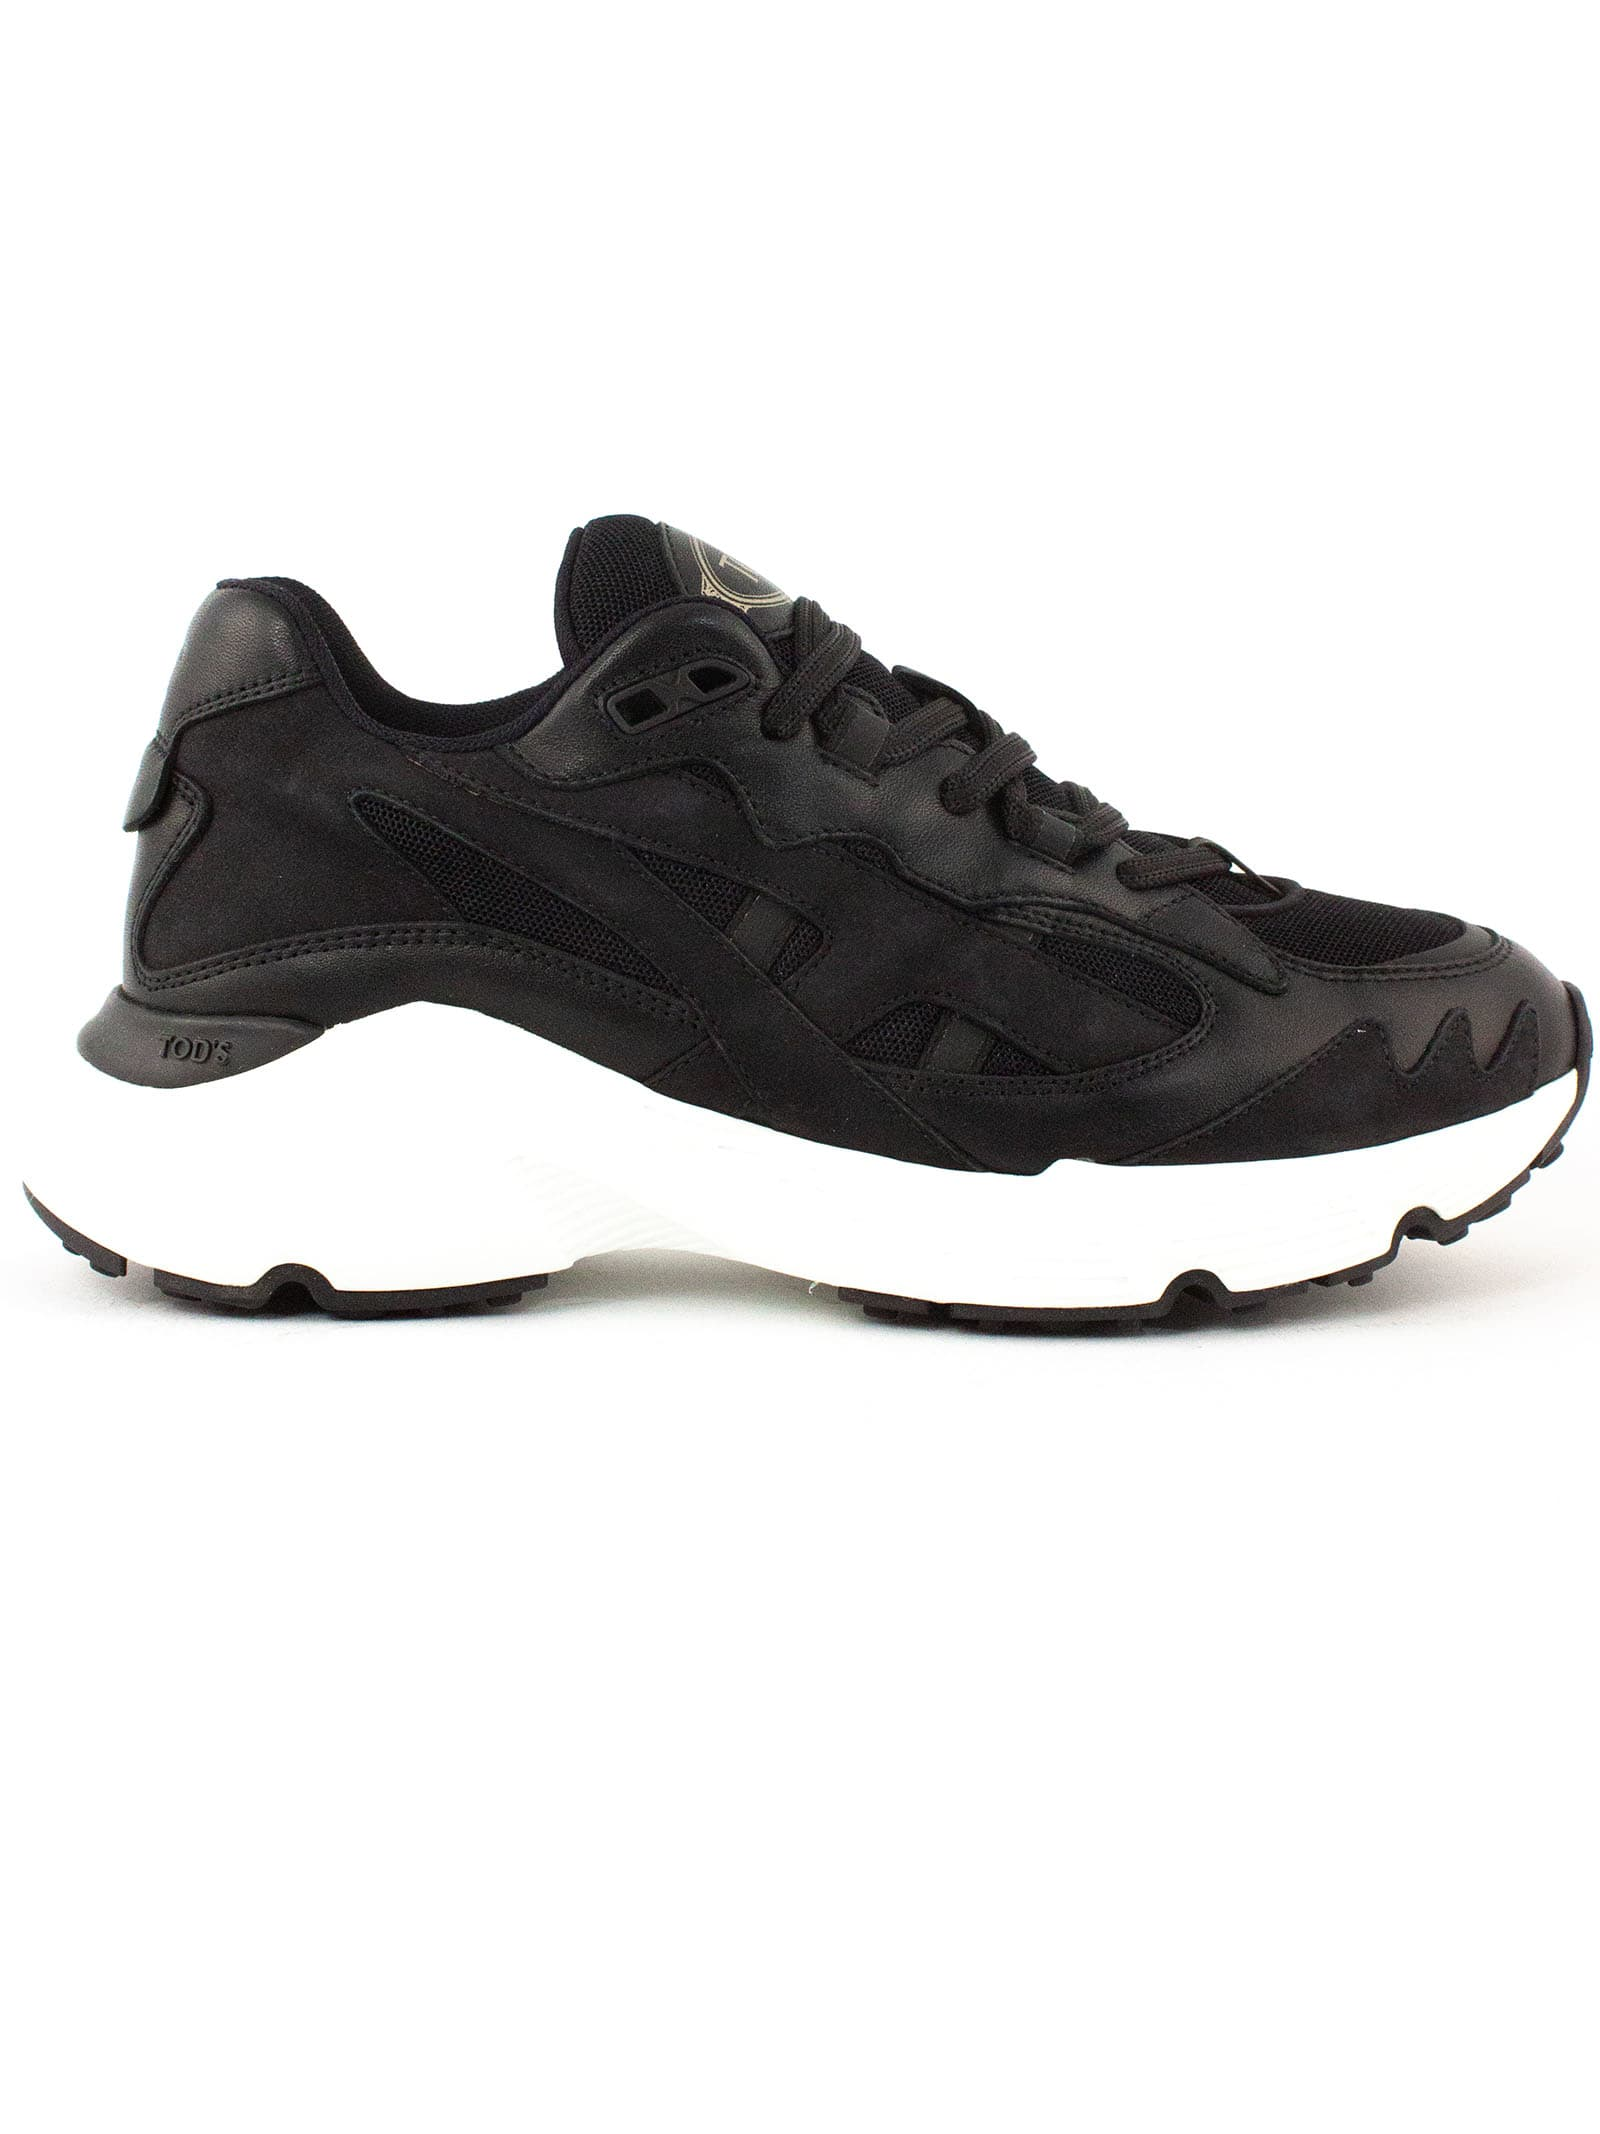 Tods Sneakers In Black Leather/fabric